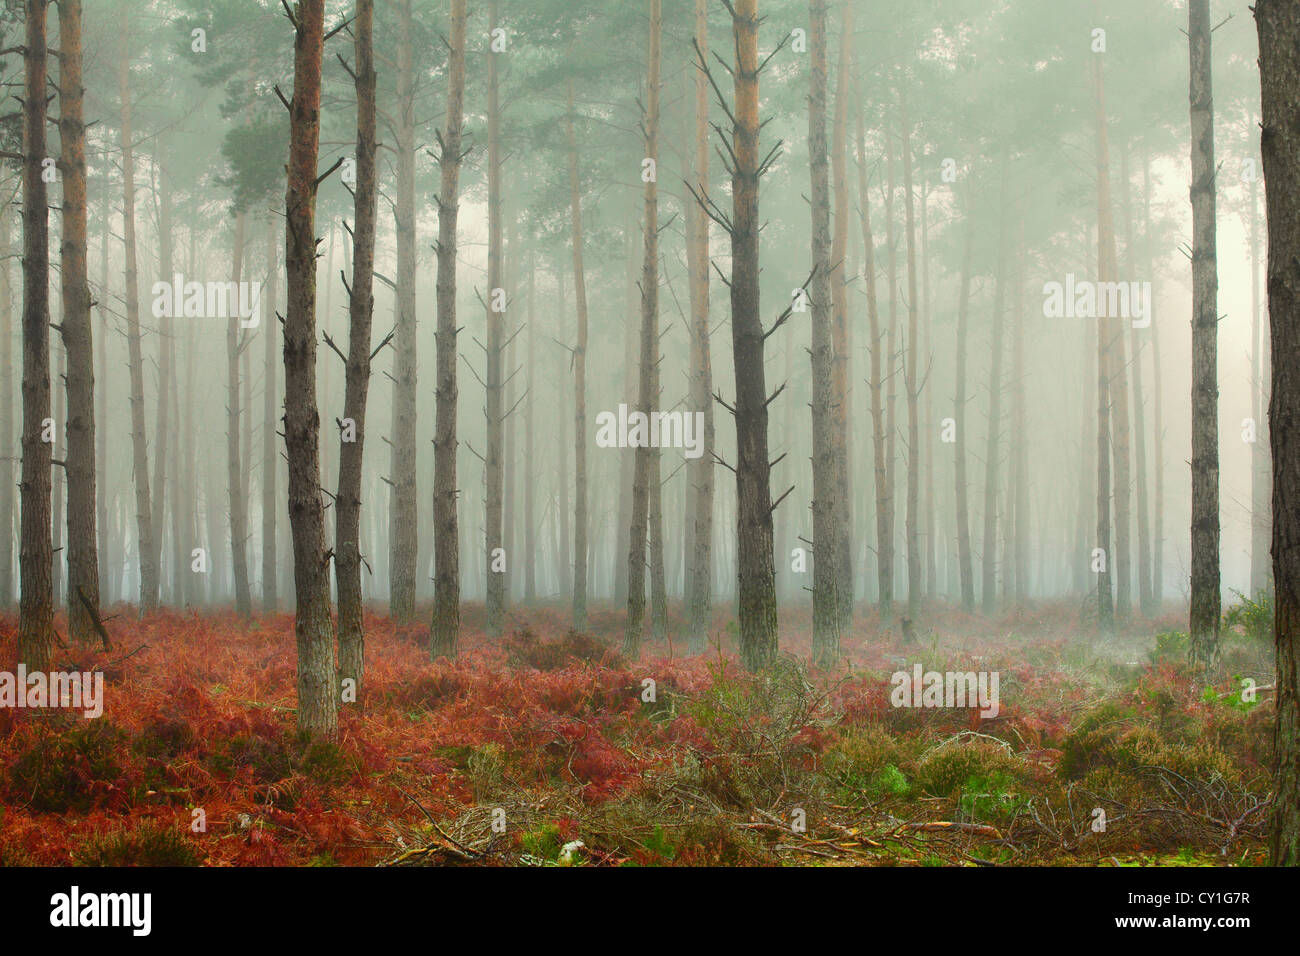 Pine trees in mist at dawn Stock Photo